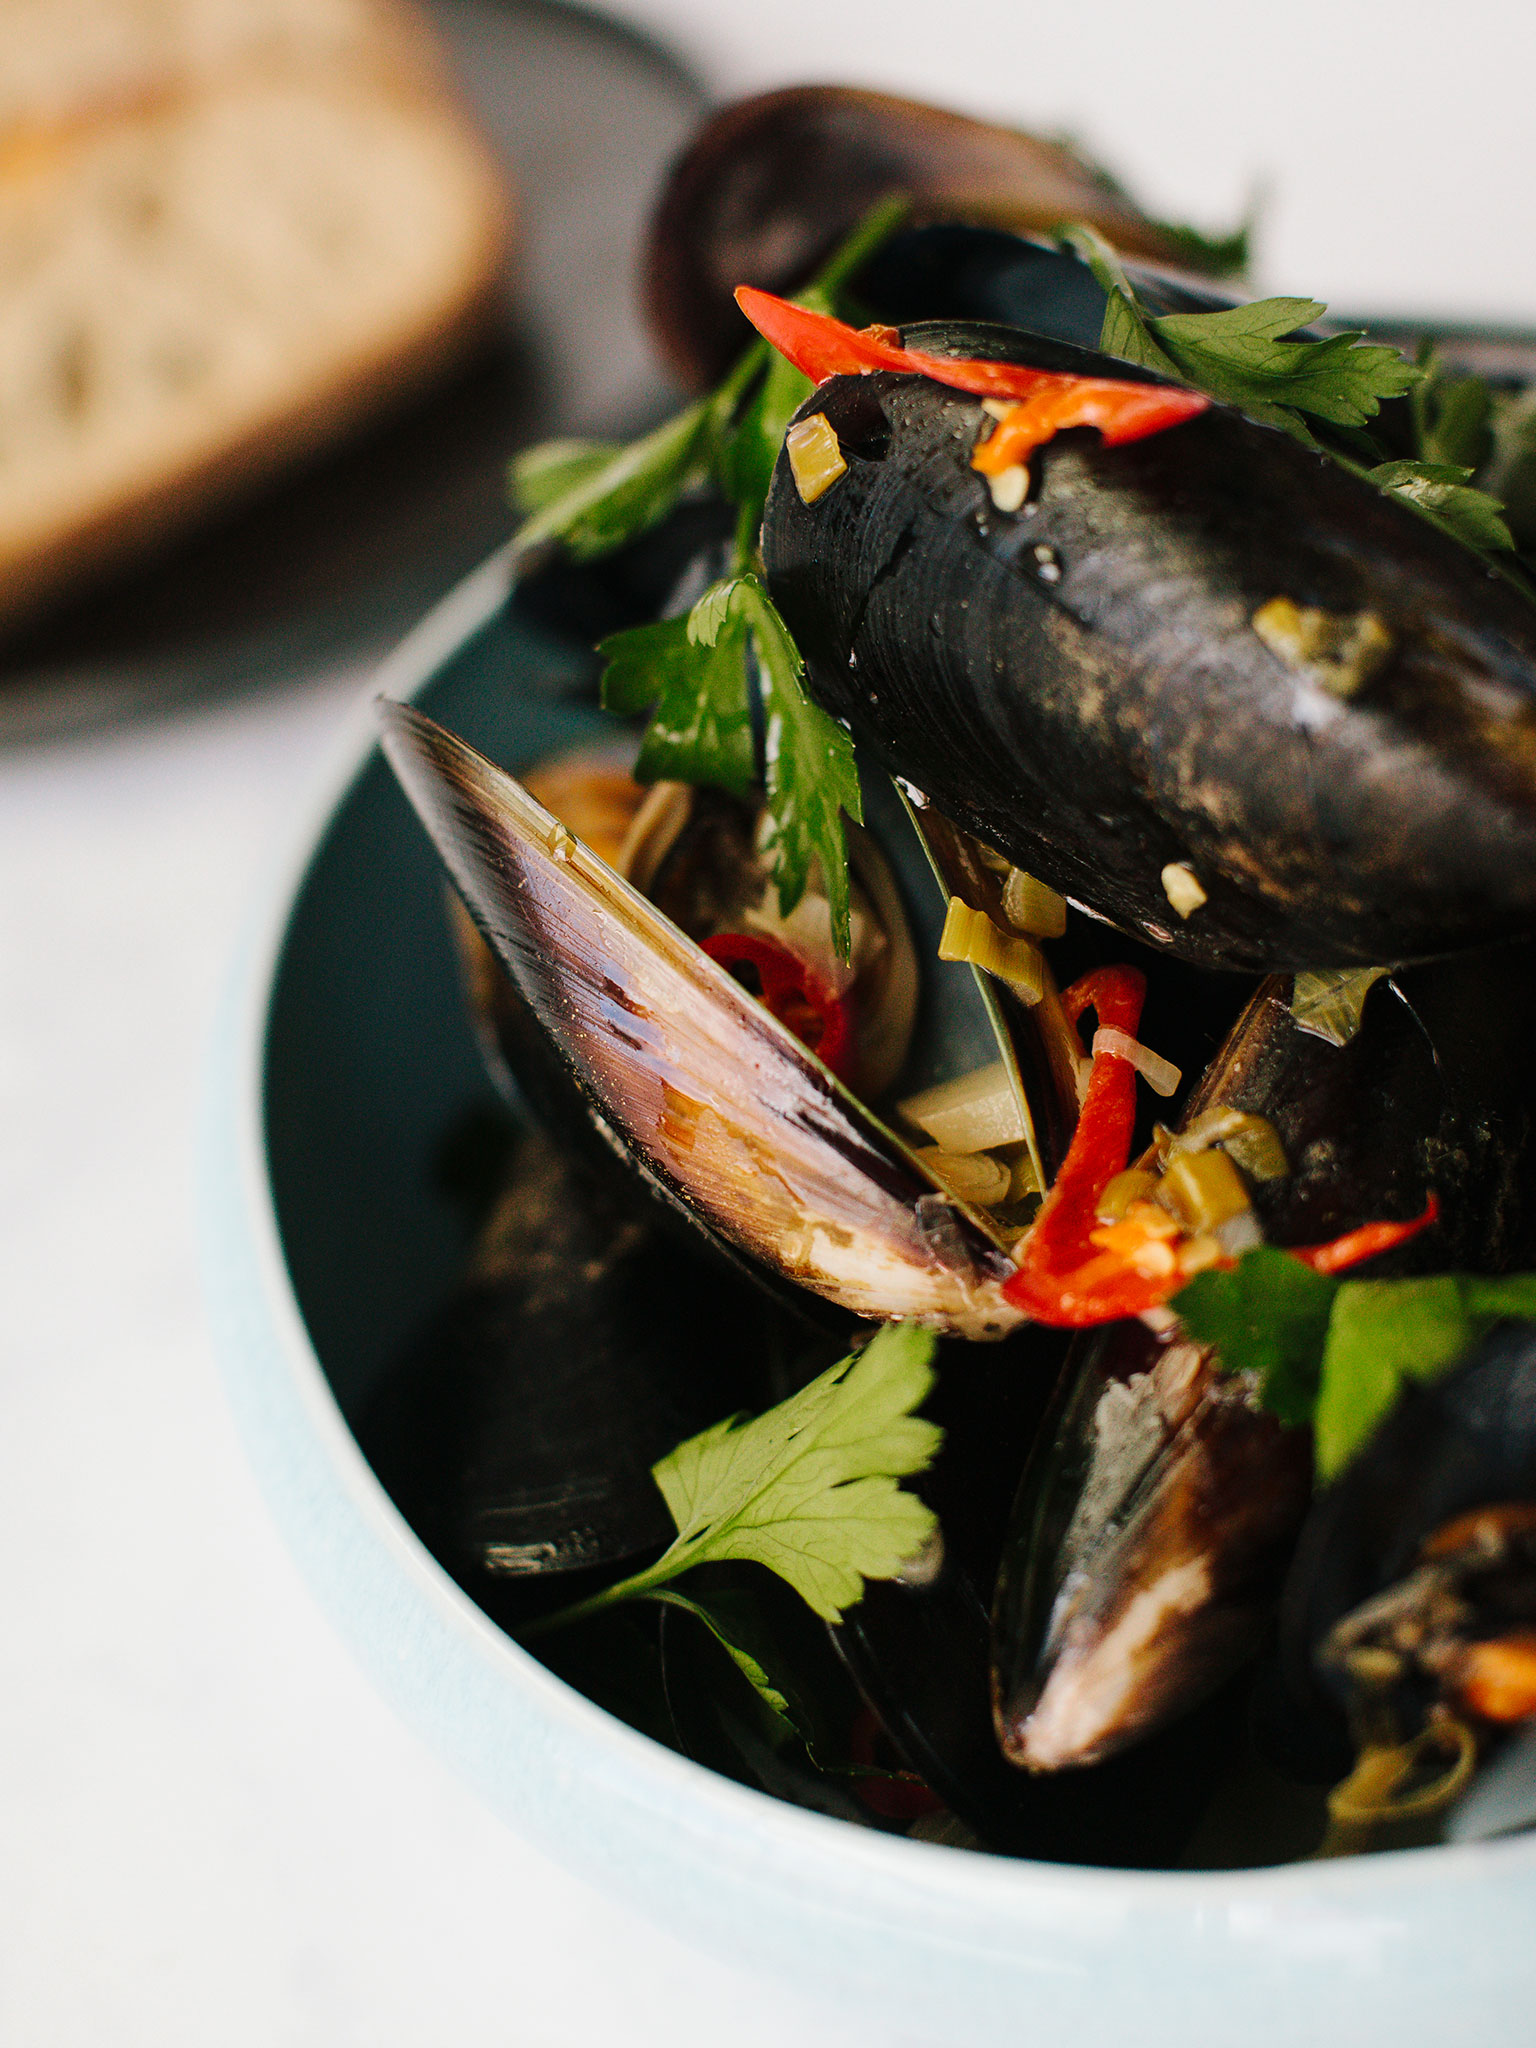 3-128-Mussels-Poached-in-White-Wine-004-web.jpg